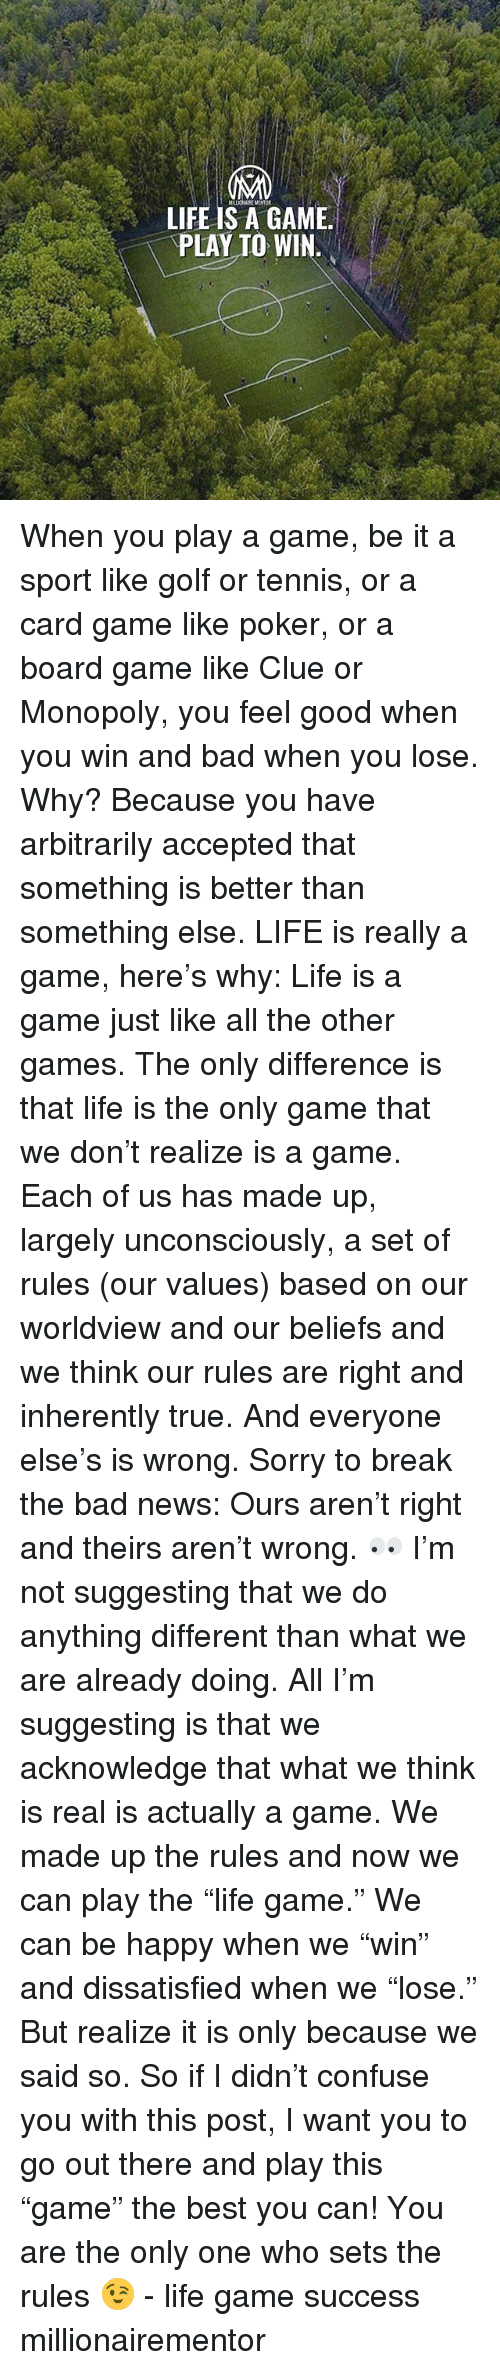 """Bad, Life, and Memes: LIFE IS A GAME.  PLAY TO WIN. When you play a game, be it a sport like golf or tennis, or a card game like poker, or a board game like Clue or Monopoly, you feel good when you win and bad when you lose. Why? Because you have arbitrarily accepted that something is better than something else. LIFE is really a game, here's why: Life is a game just like all the other games. The only difference is that life is the only game that we don't realize is a game. Each of us has made up, largely unconsciously, a set of rules (our values) based on our worldview and our beliefs and we think our rules are right and inherently true. And everyone else's is wrong. Sorry to break the bad news: Ours aren't right and theirs aren't wrong. 👀 I'm not suggesting that we do anything different than what we are already doing. All I'm suggesting is that we acknowledge that what we think is real is actually a game. We made up the rules and now we can play the """"life game."""" We can be happy when we """"win"""" and dissatisfied when we """"lose."""" But realize it is only because we said so. So if I didn't confuse you with this post, I want you to go out there and play this """"game"""" the best you can! You are the only one who sets the rules 😉 - life game success millionairementor"""